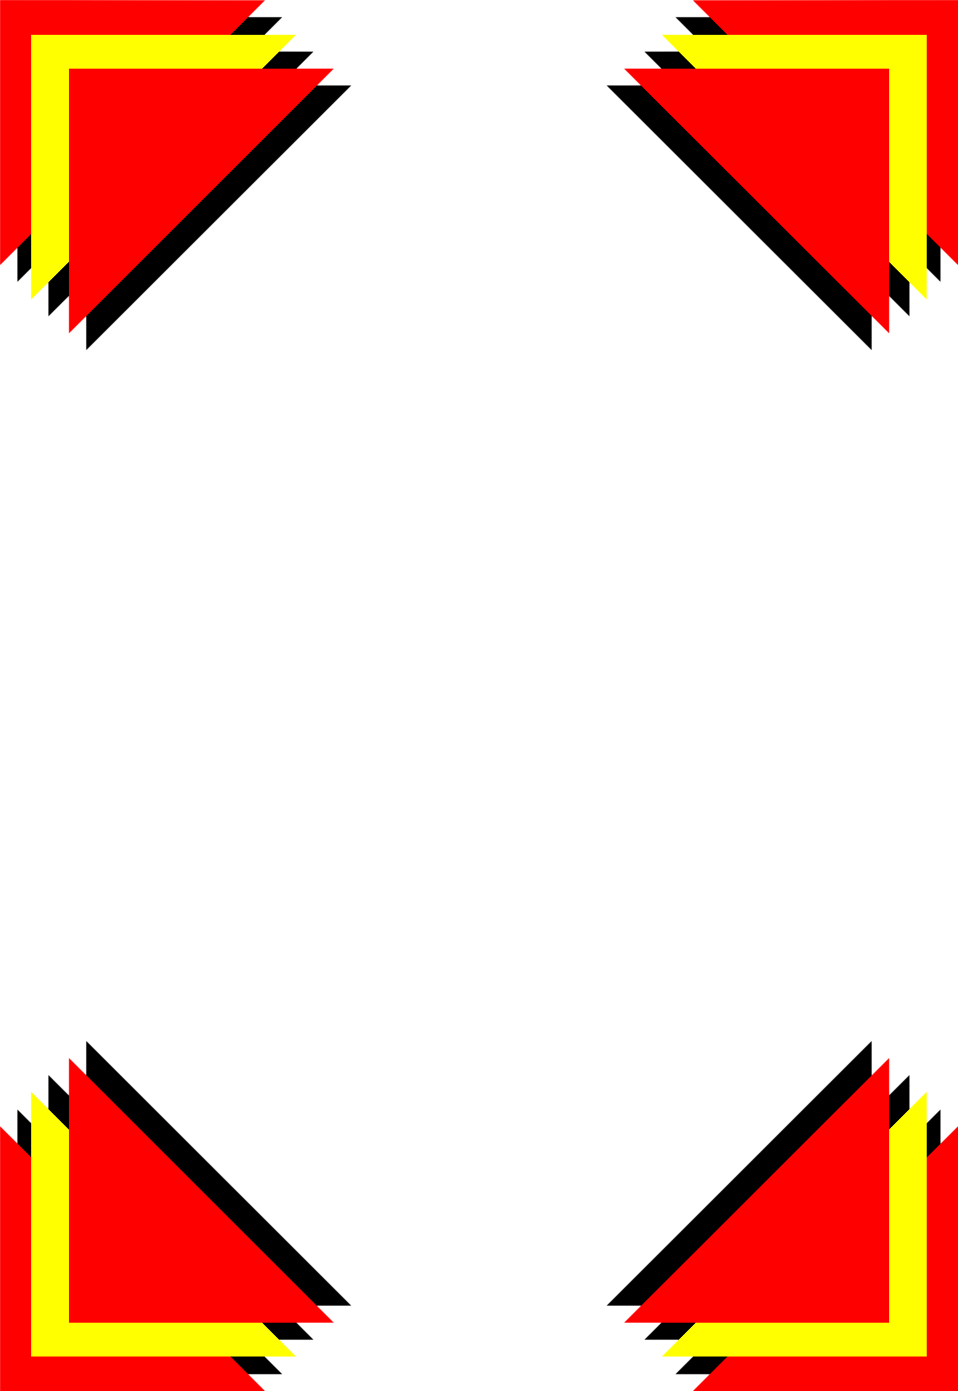 Free stock photos illustration of a blank frame border with - Illustration Of A Blank Frame Border With Red And Yellow Corners Free Stock Photo